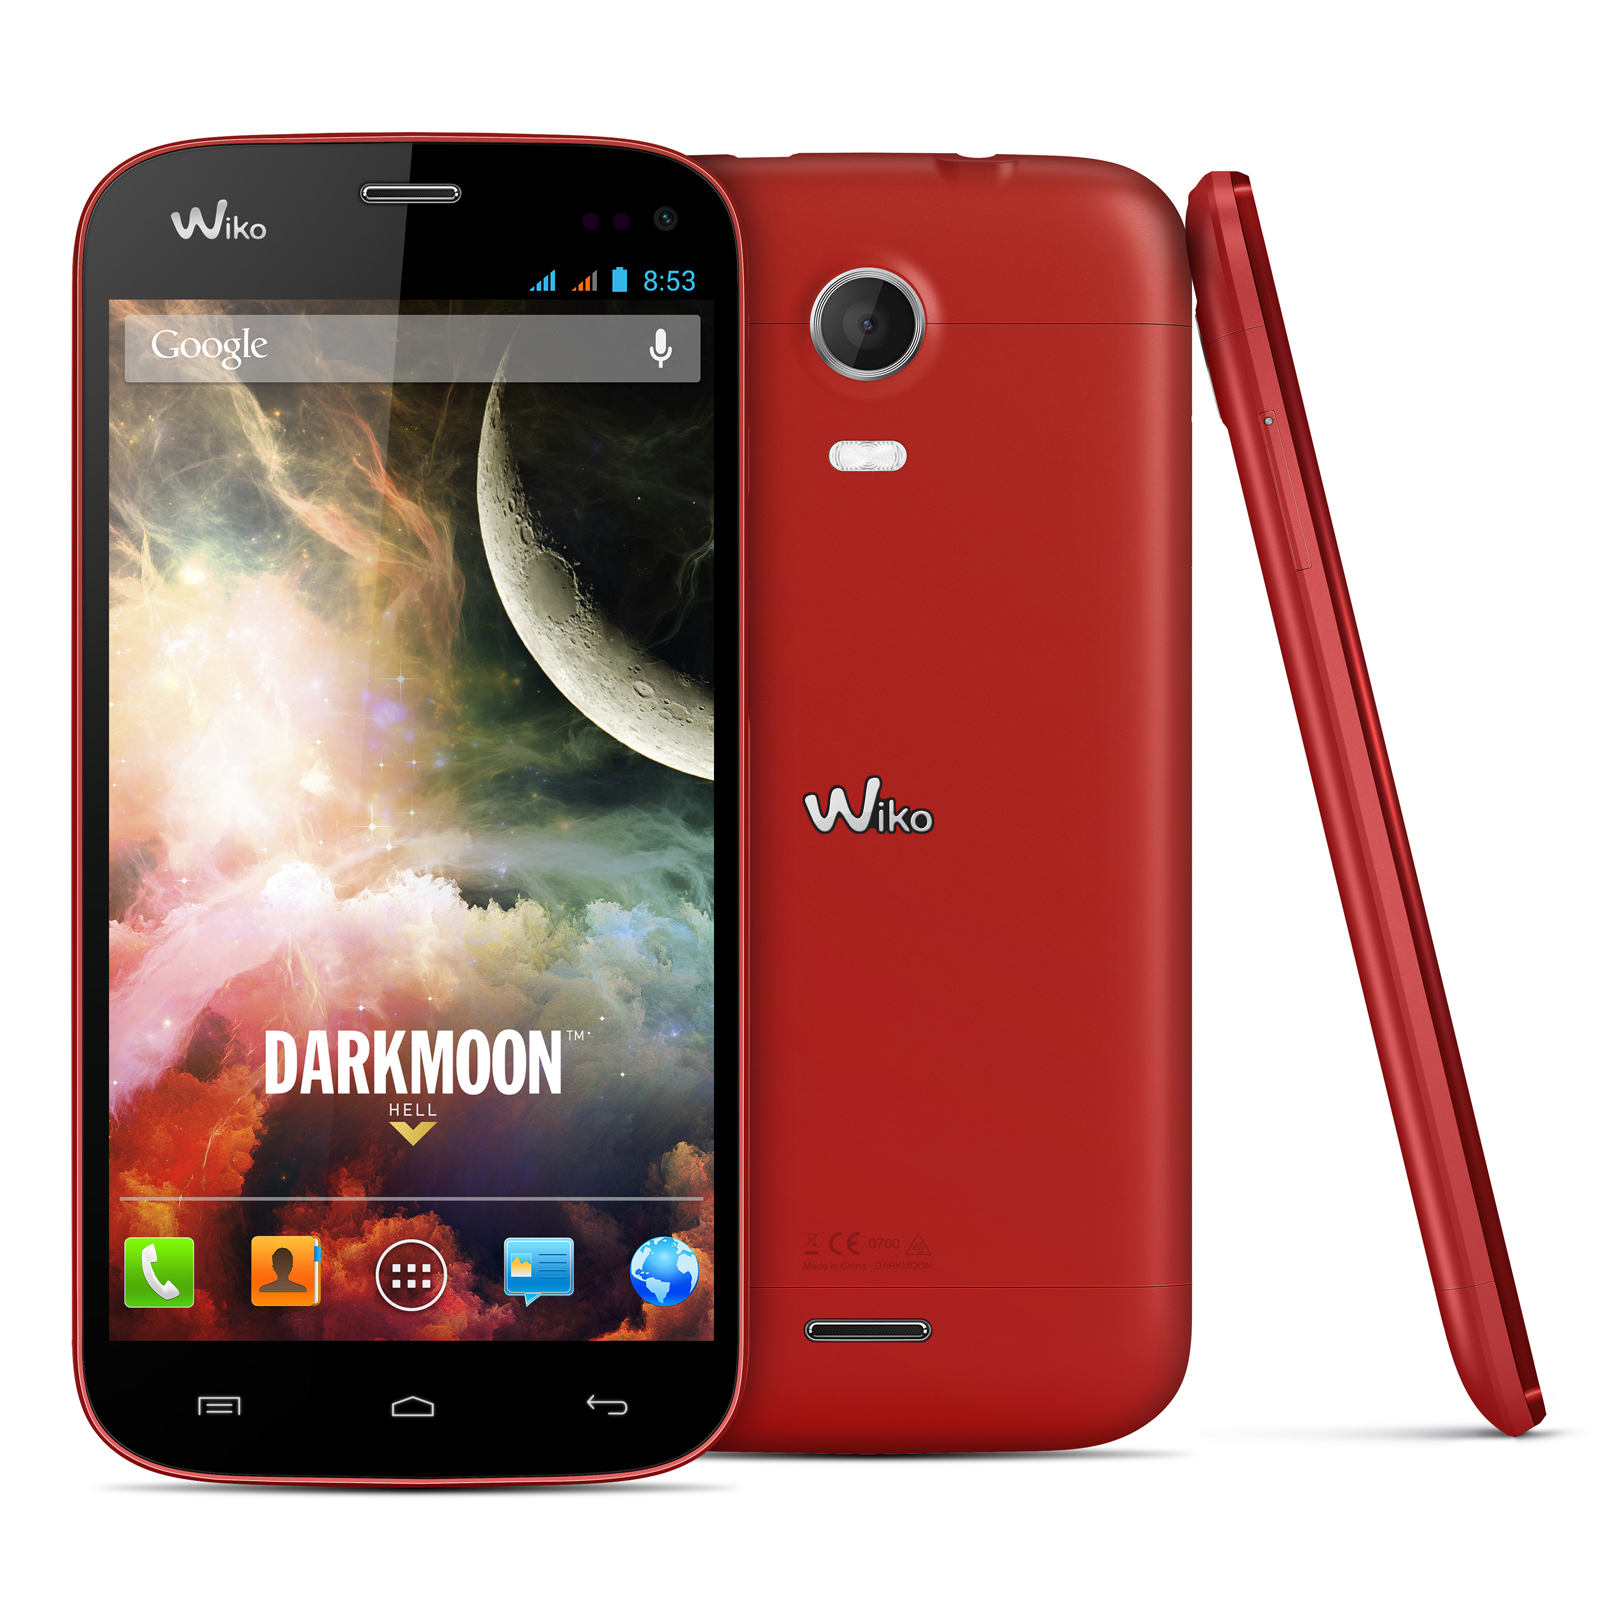 Wiko darkmoon rouge mobile smartphone wiko sur for Photo ecran android 7